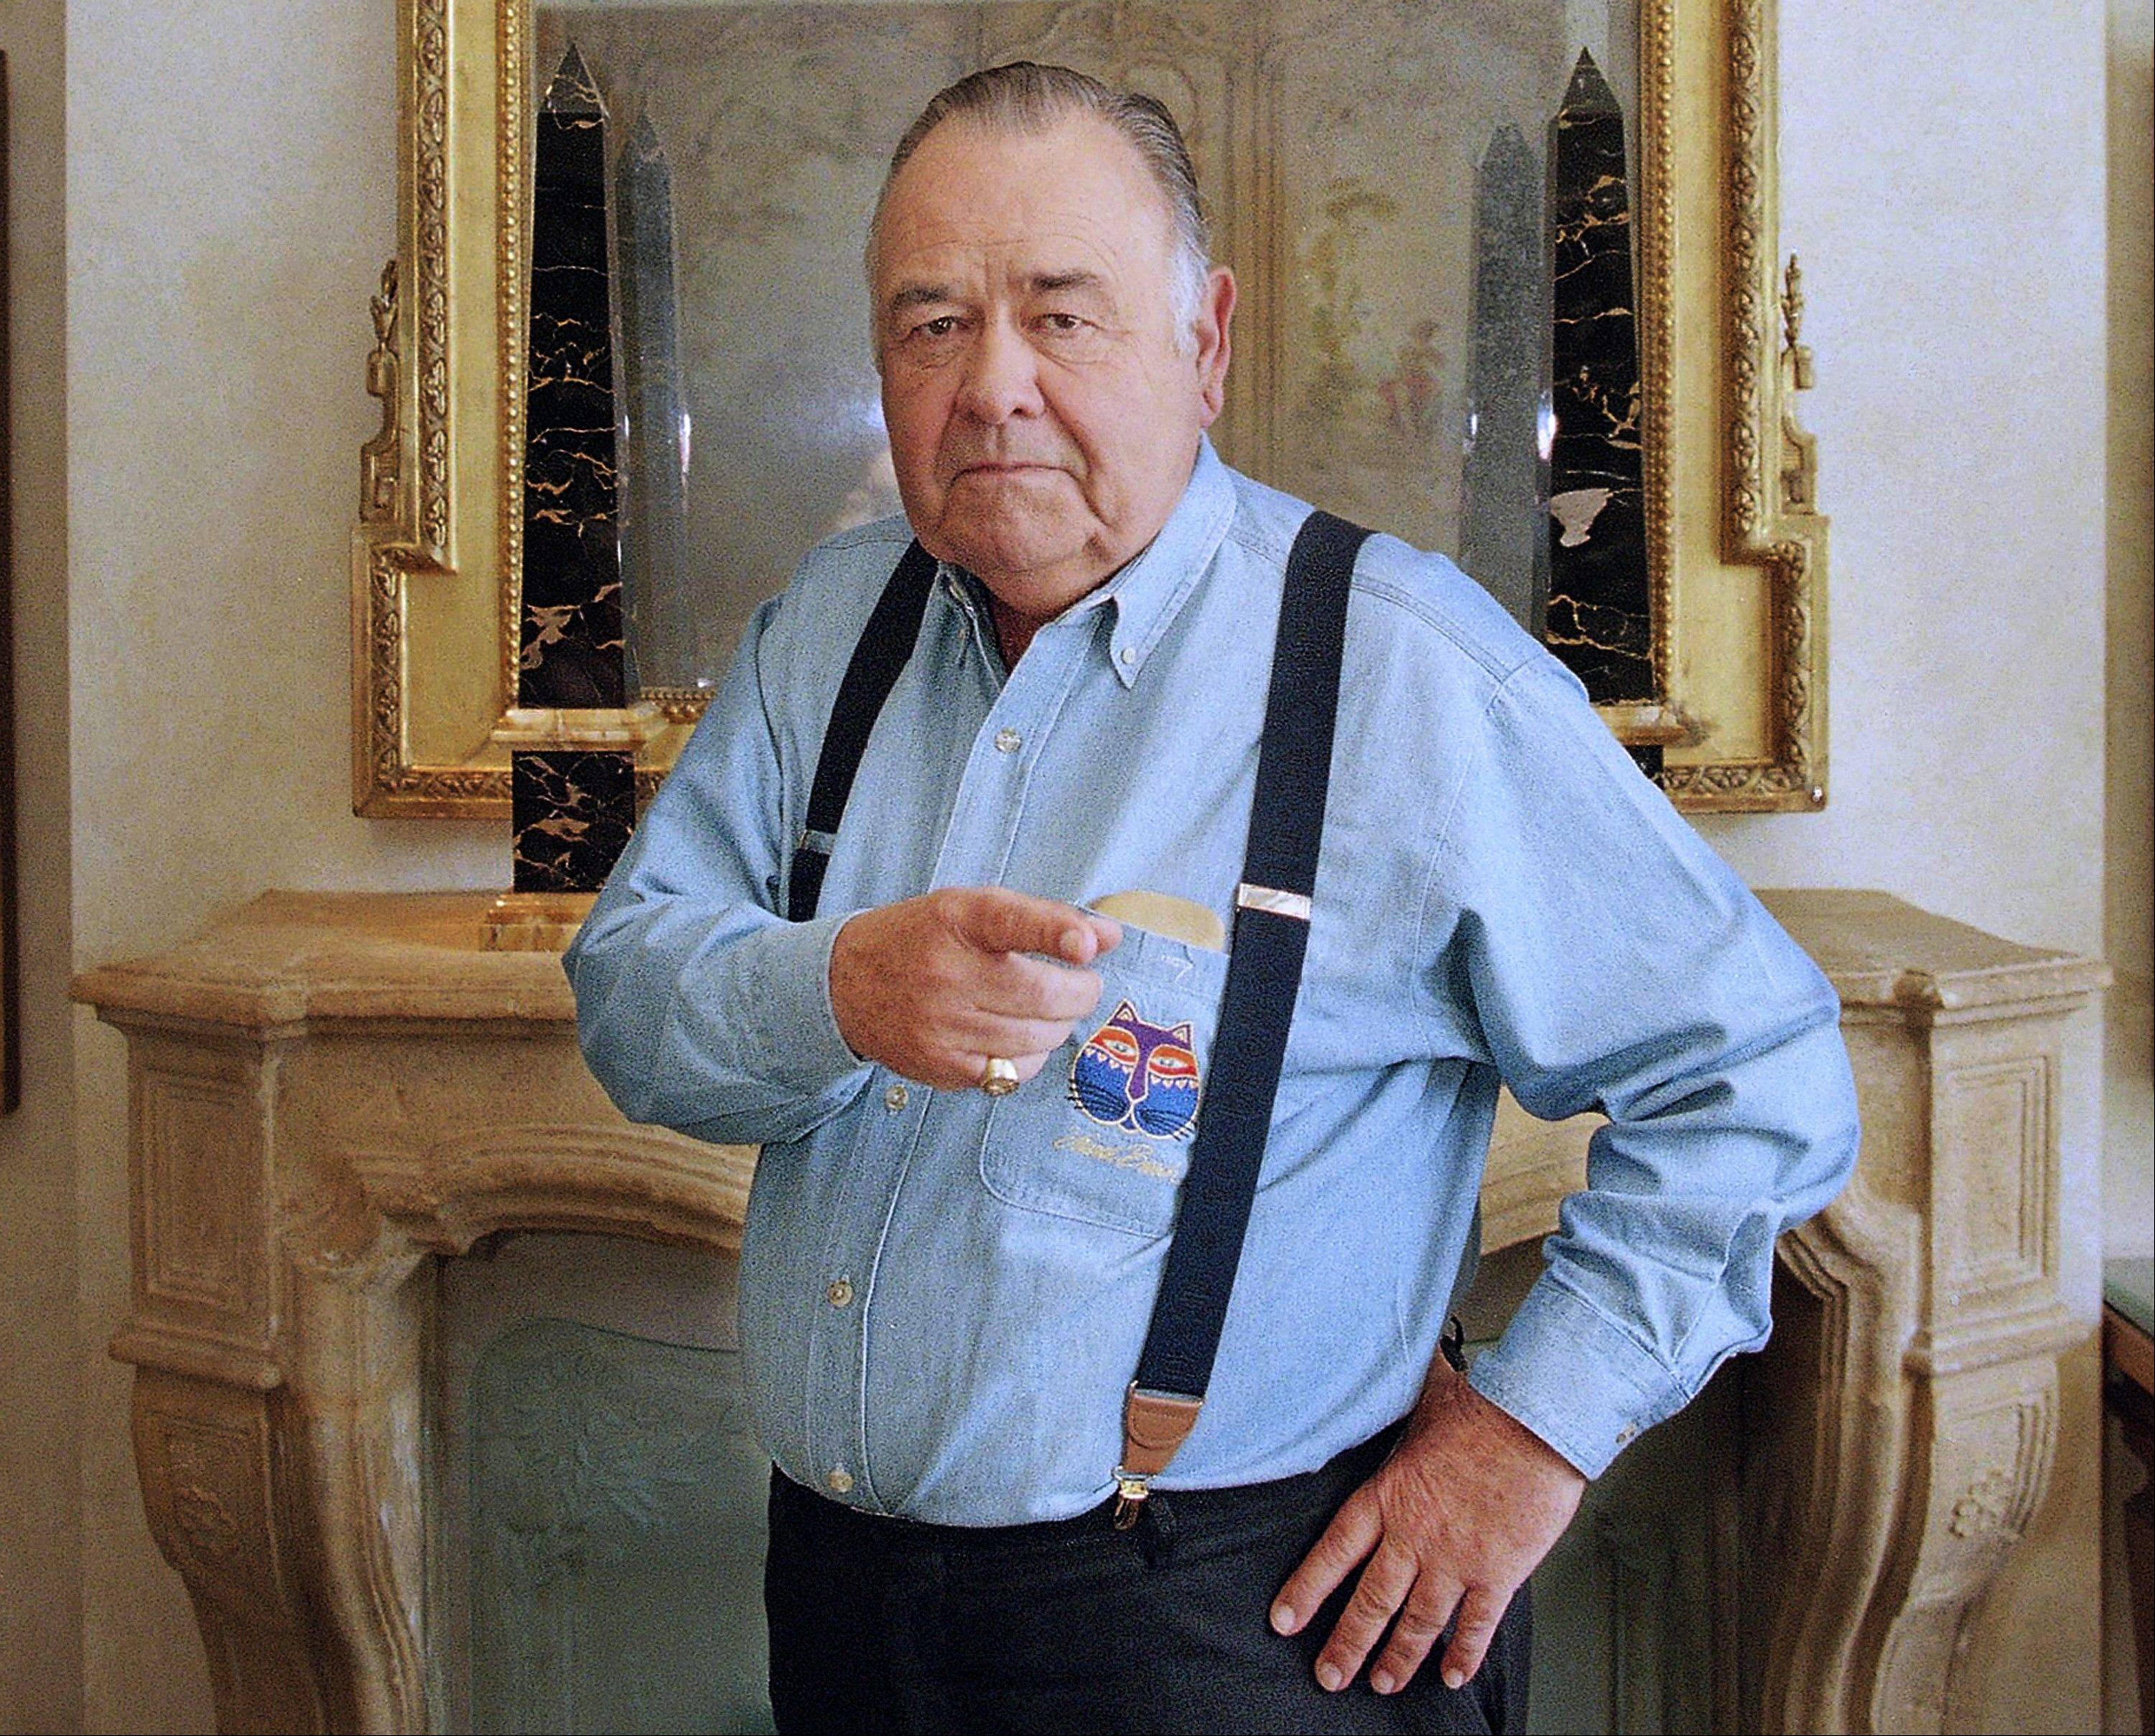 In this May 6, 1997 file photo, comedian Jonathan Winters poses at a hotel in Beverly Hills, Calif. Winters, whose breakneck improvisations inspired Robin Williams, Jim Carrey and many others, died Thursday, April 11, 2013, at his Montecito, Calif., home of natural causes. He was 87.